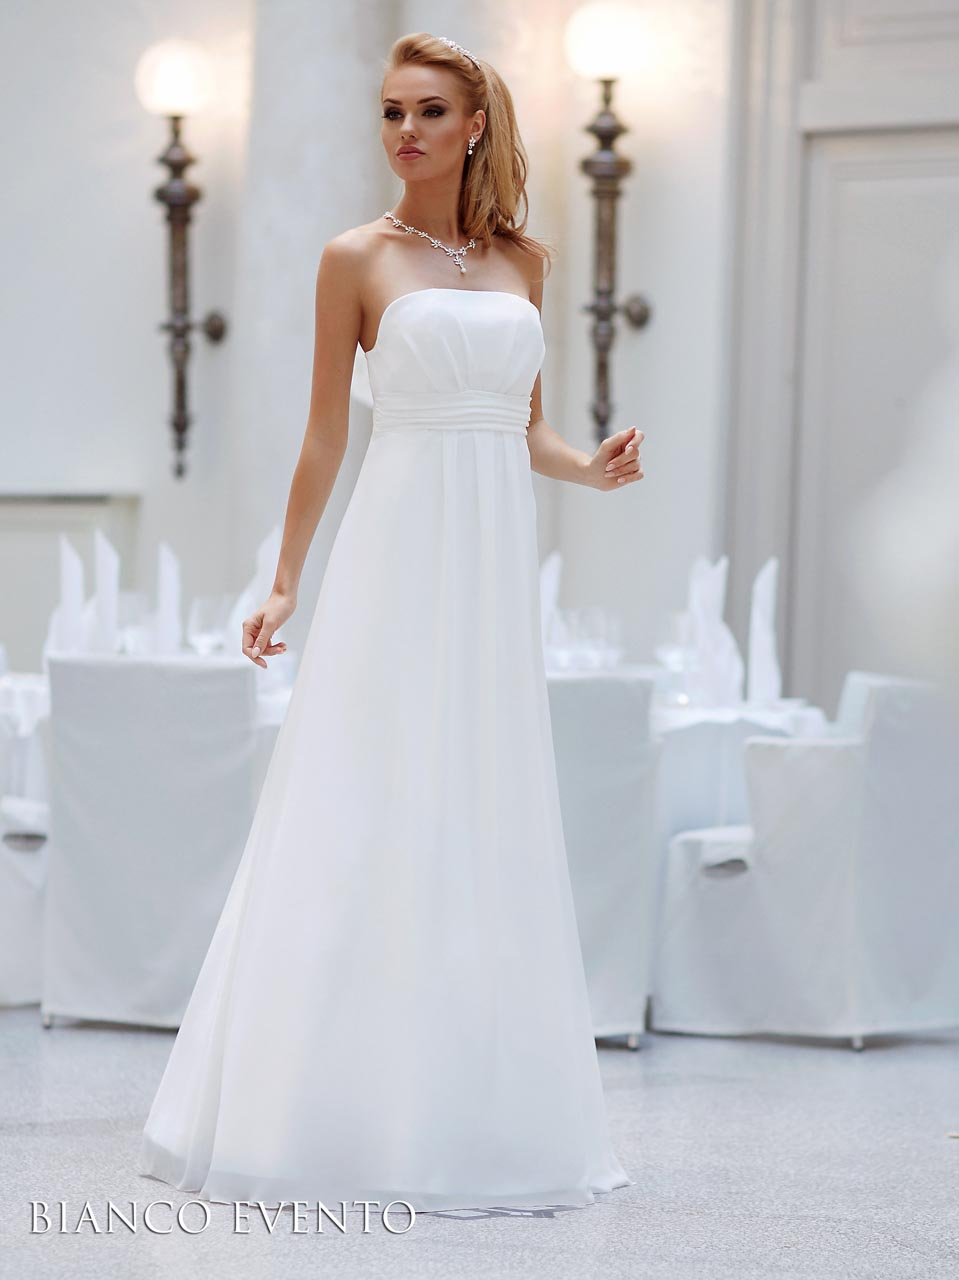 Empire Brautkleid Bianco Evento